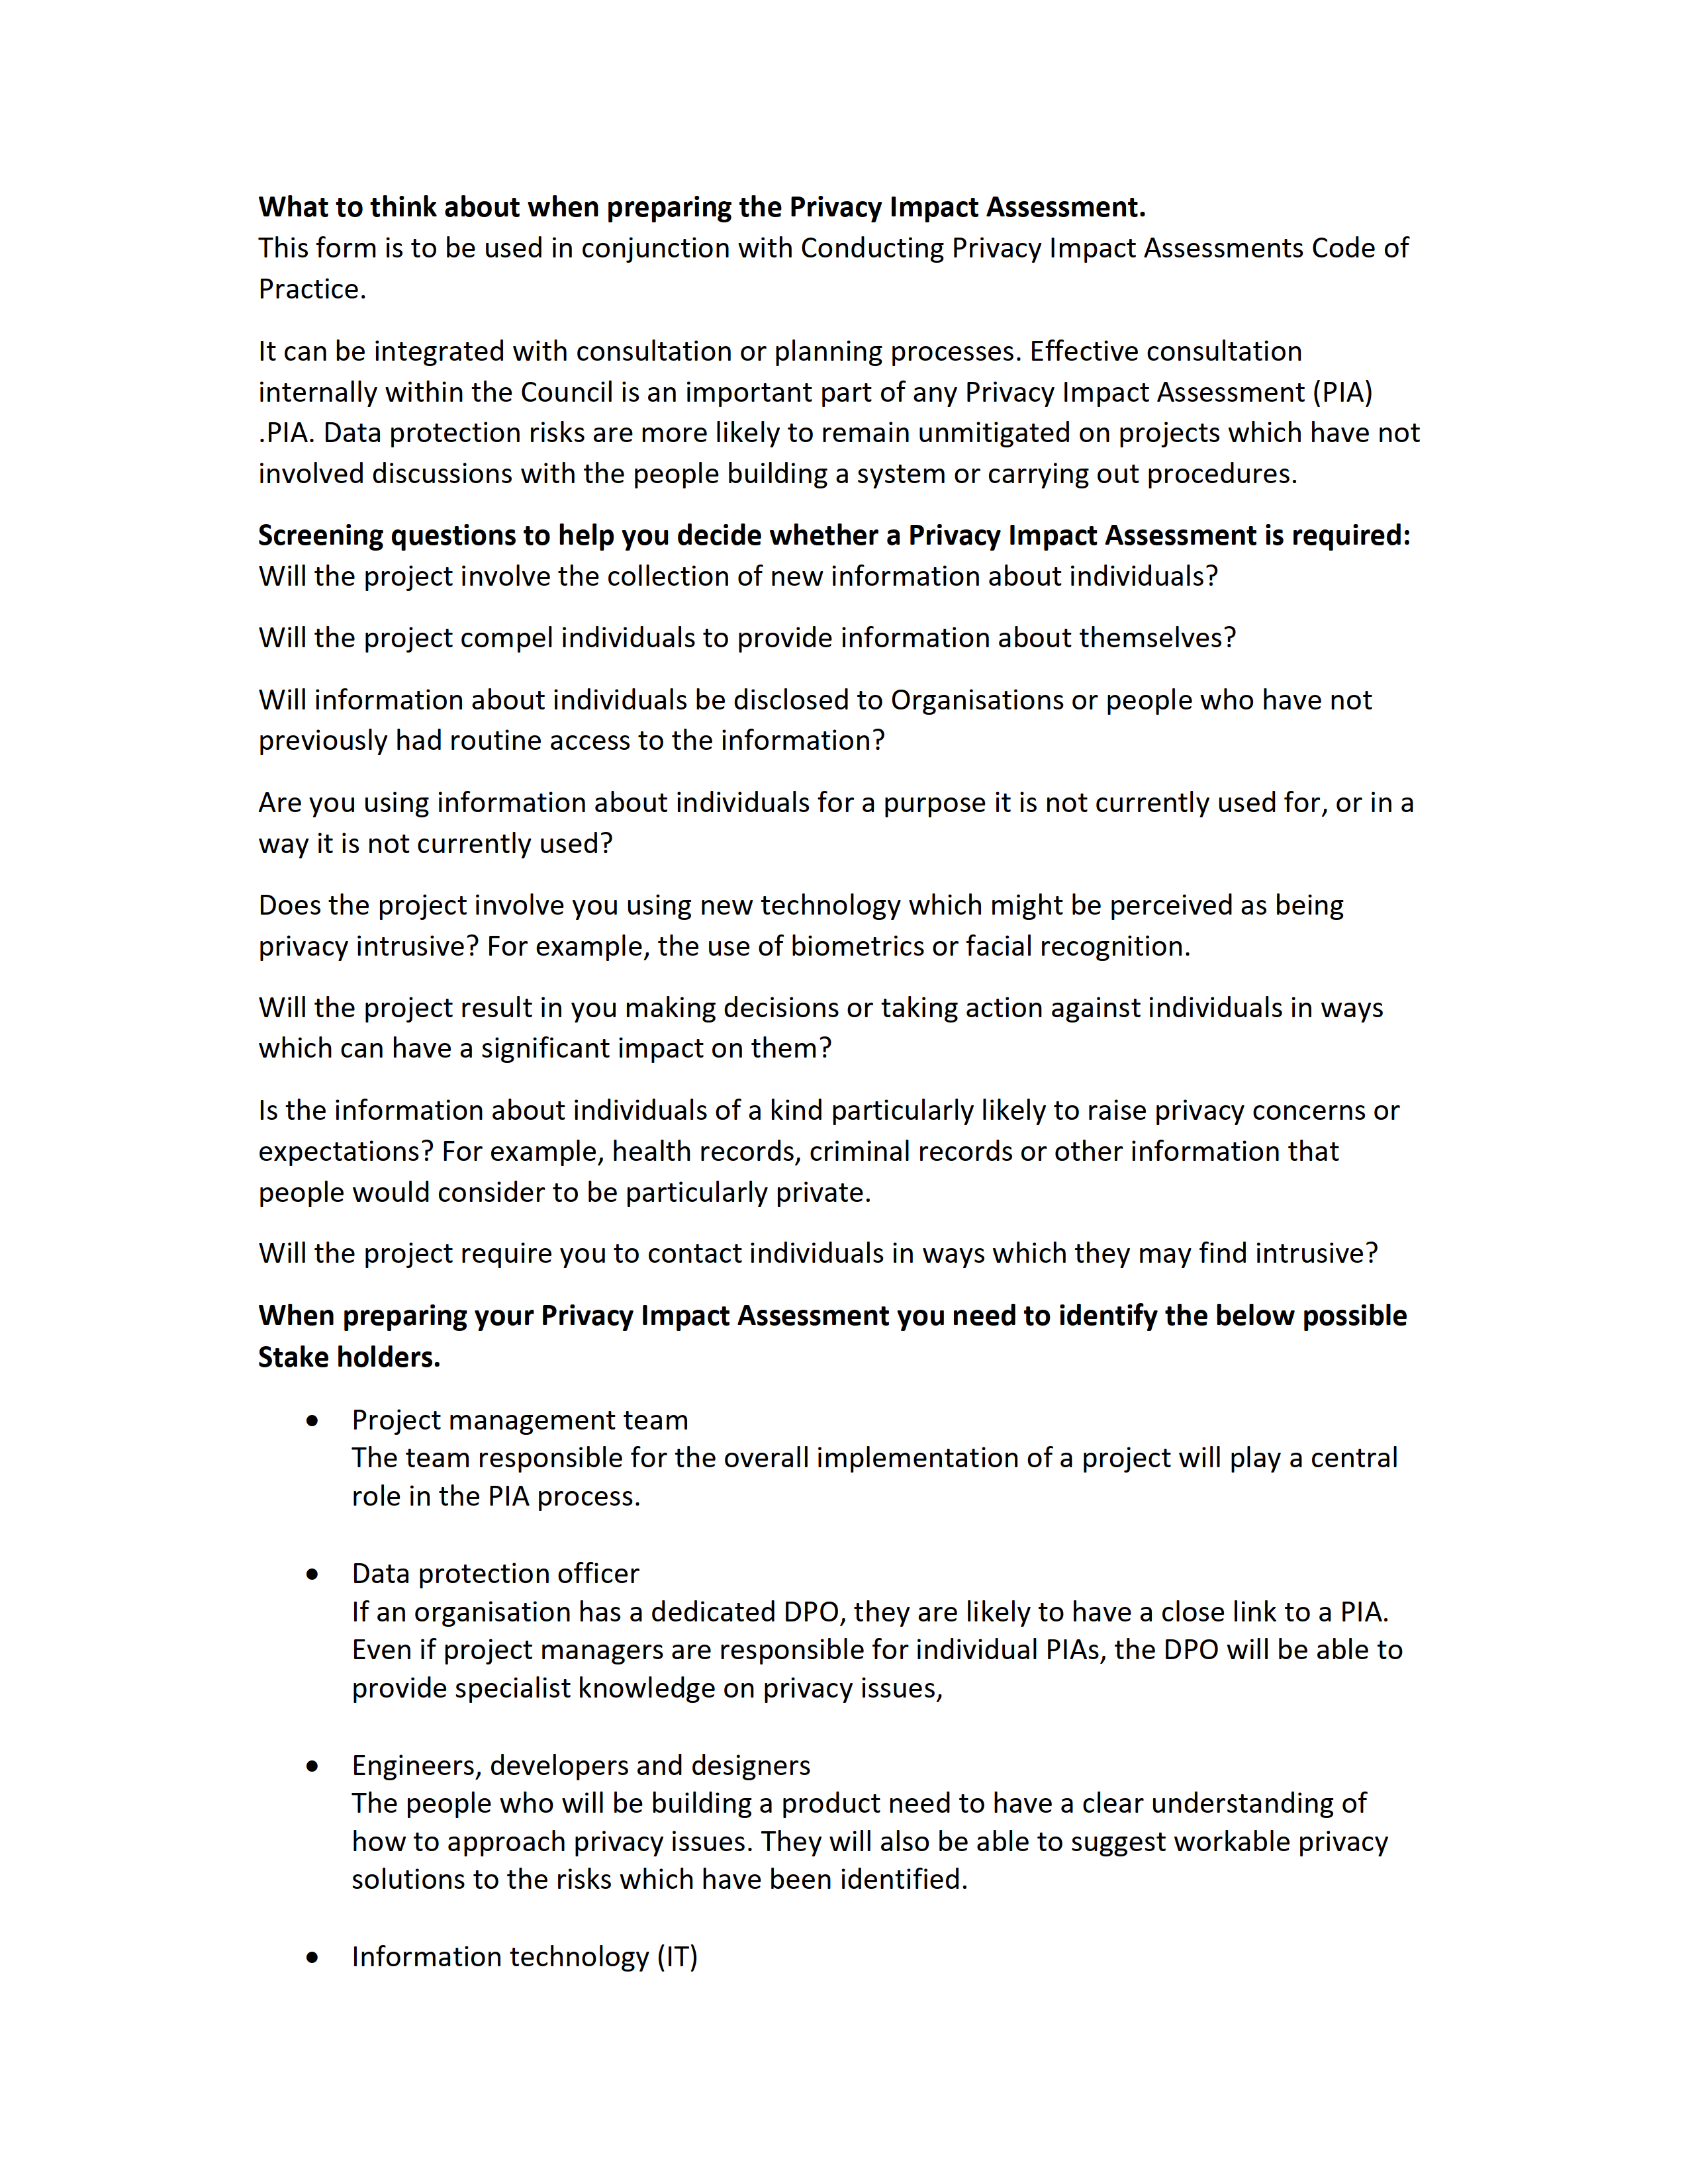 GDPR10_HCPC_Privacy_Impact_Assesment2.png